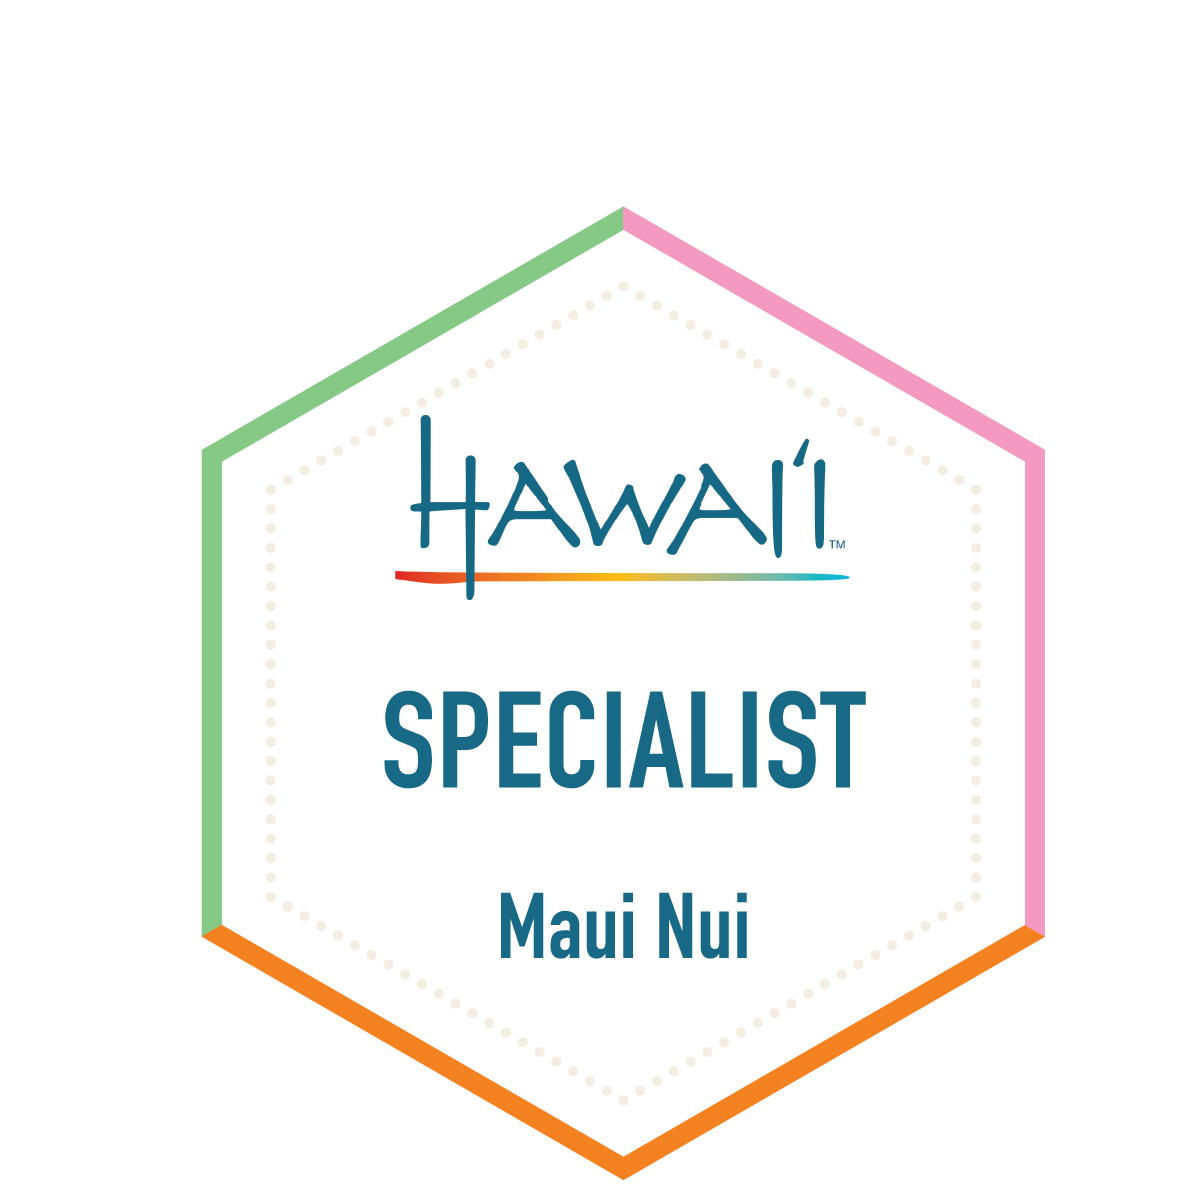 HS_badge_MauiNui.png